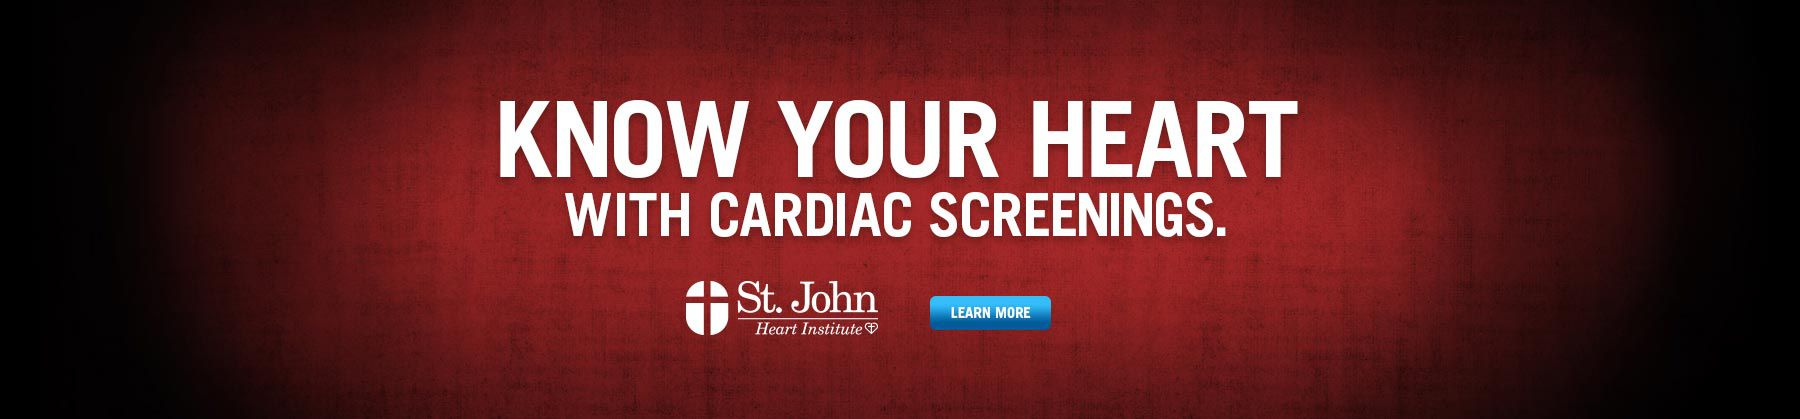 Know Your Heart with Cardiac Screenings